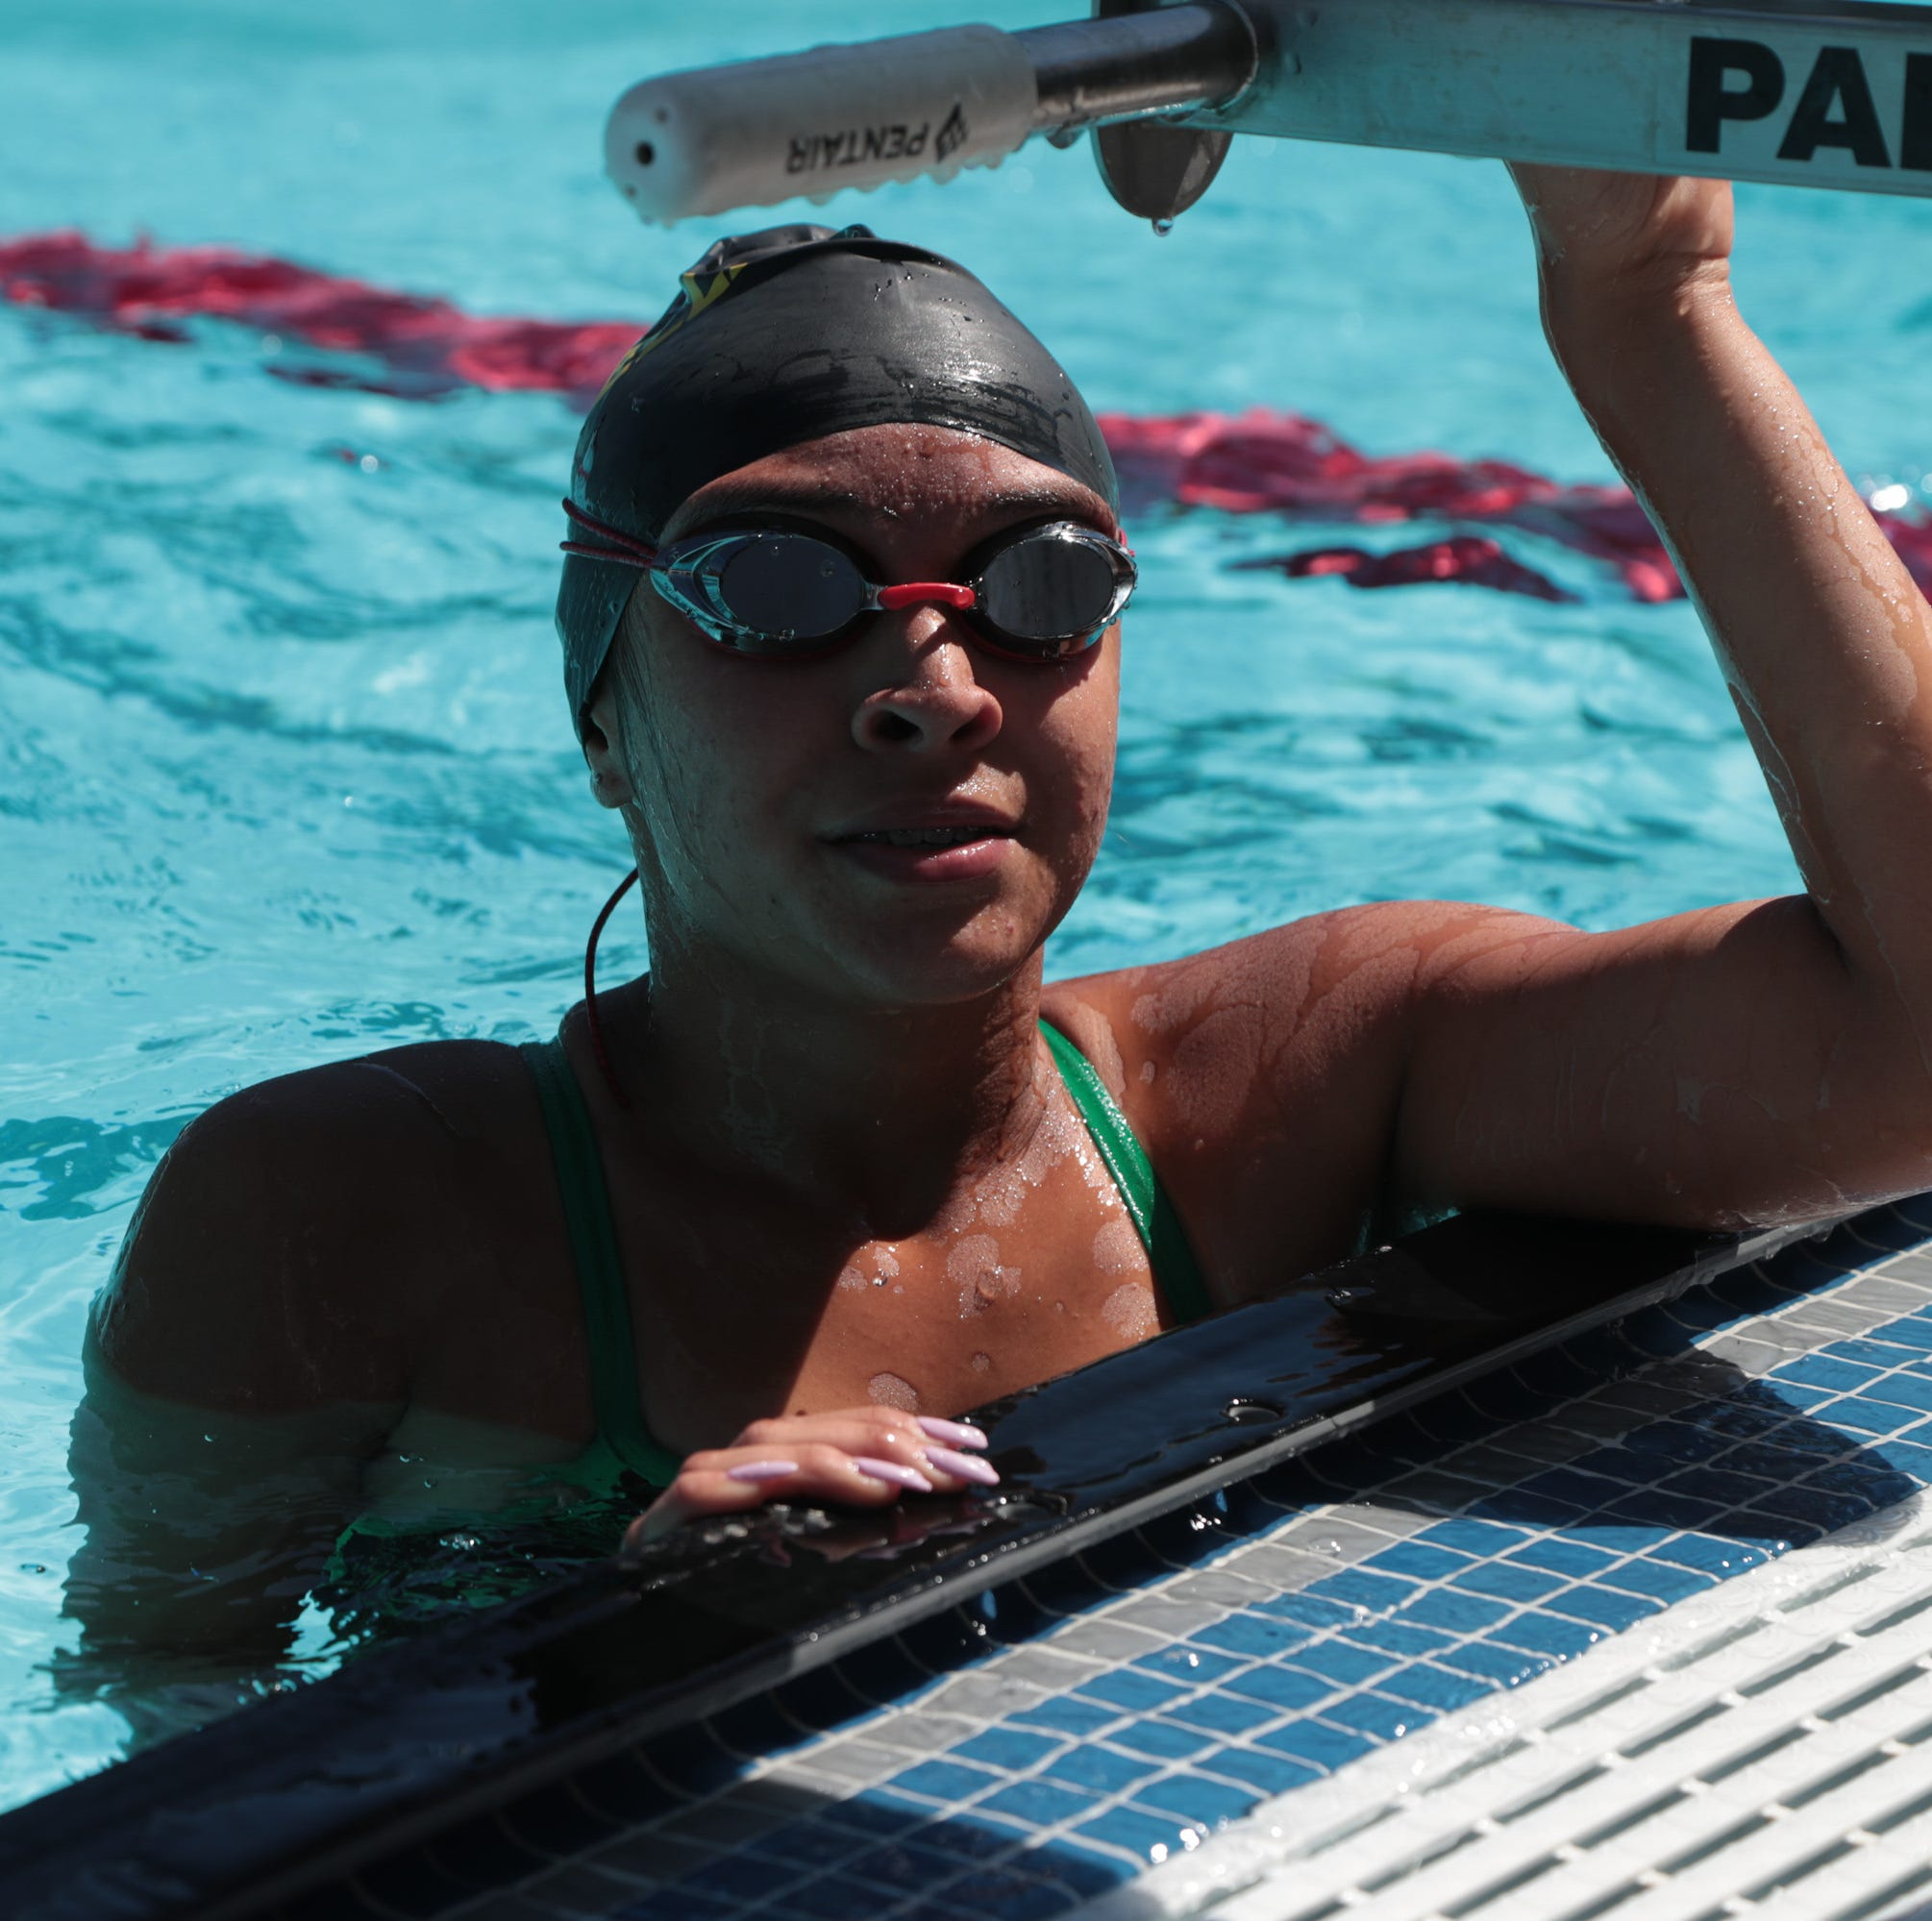 Olivia Garcia, David Nunez and Twentynine Palms make biggest splash at DVL meet